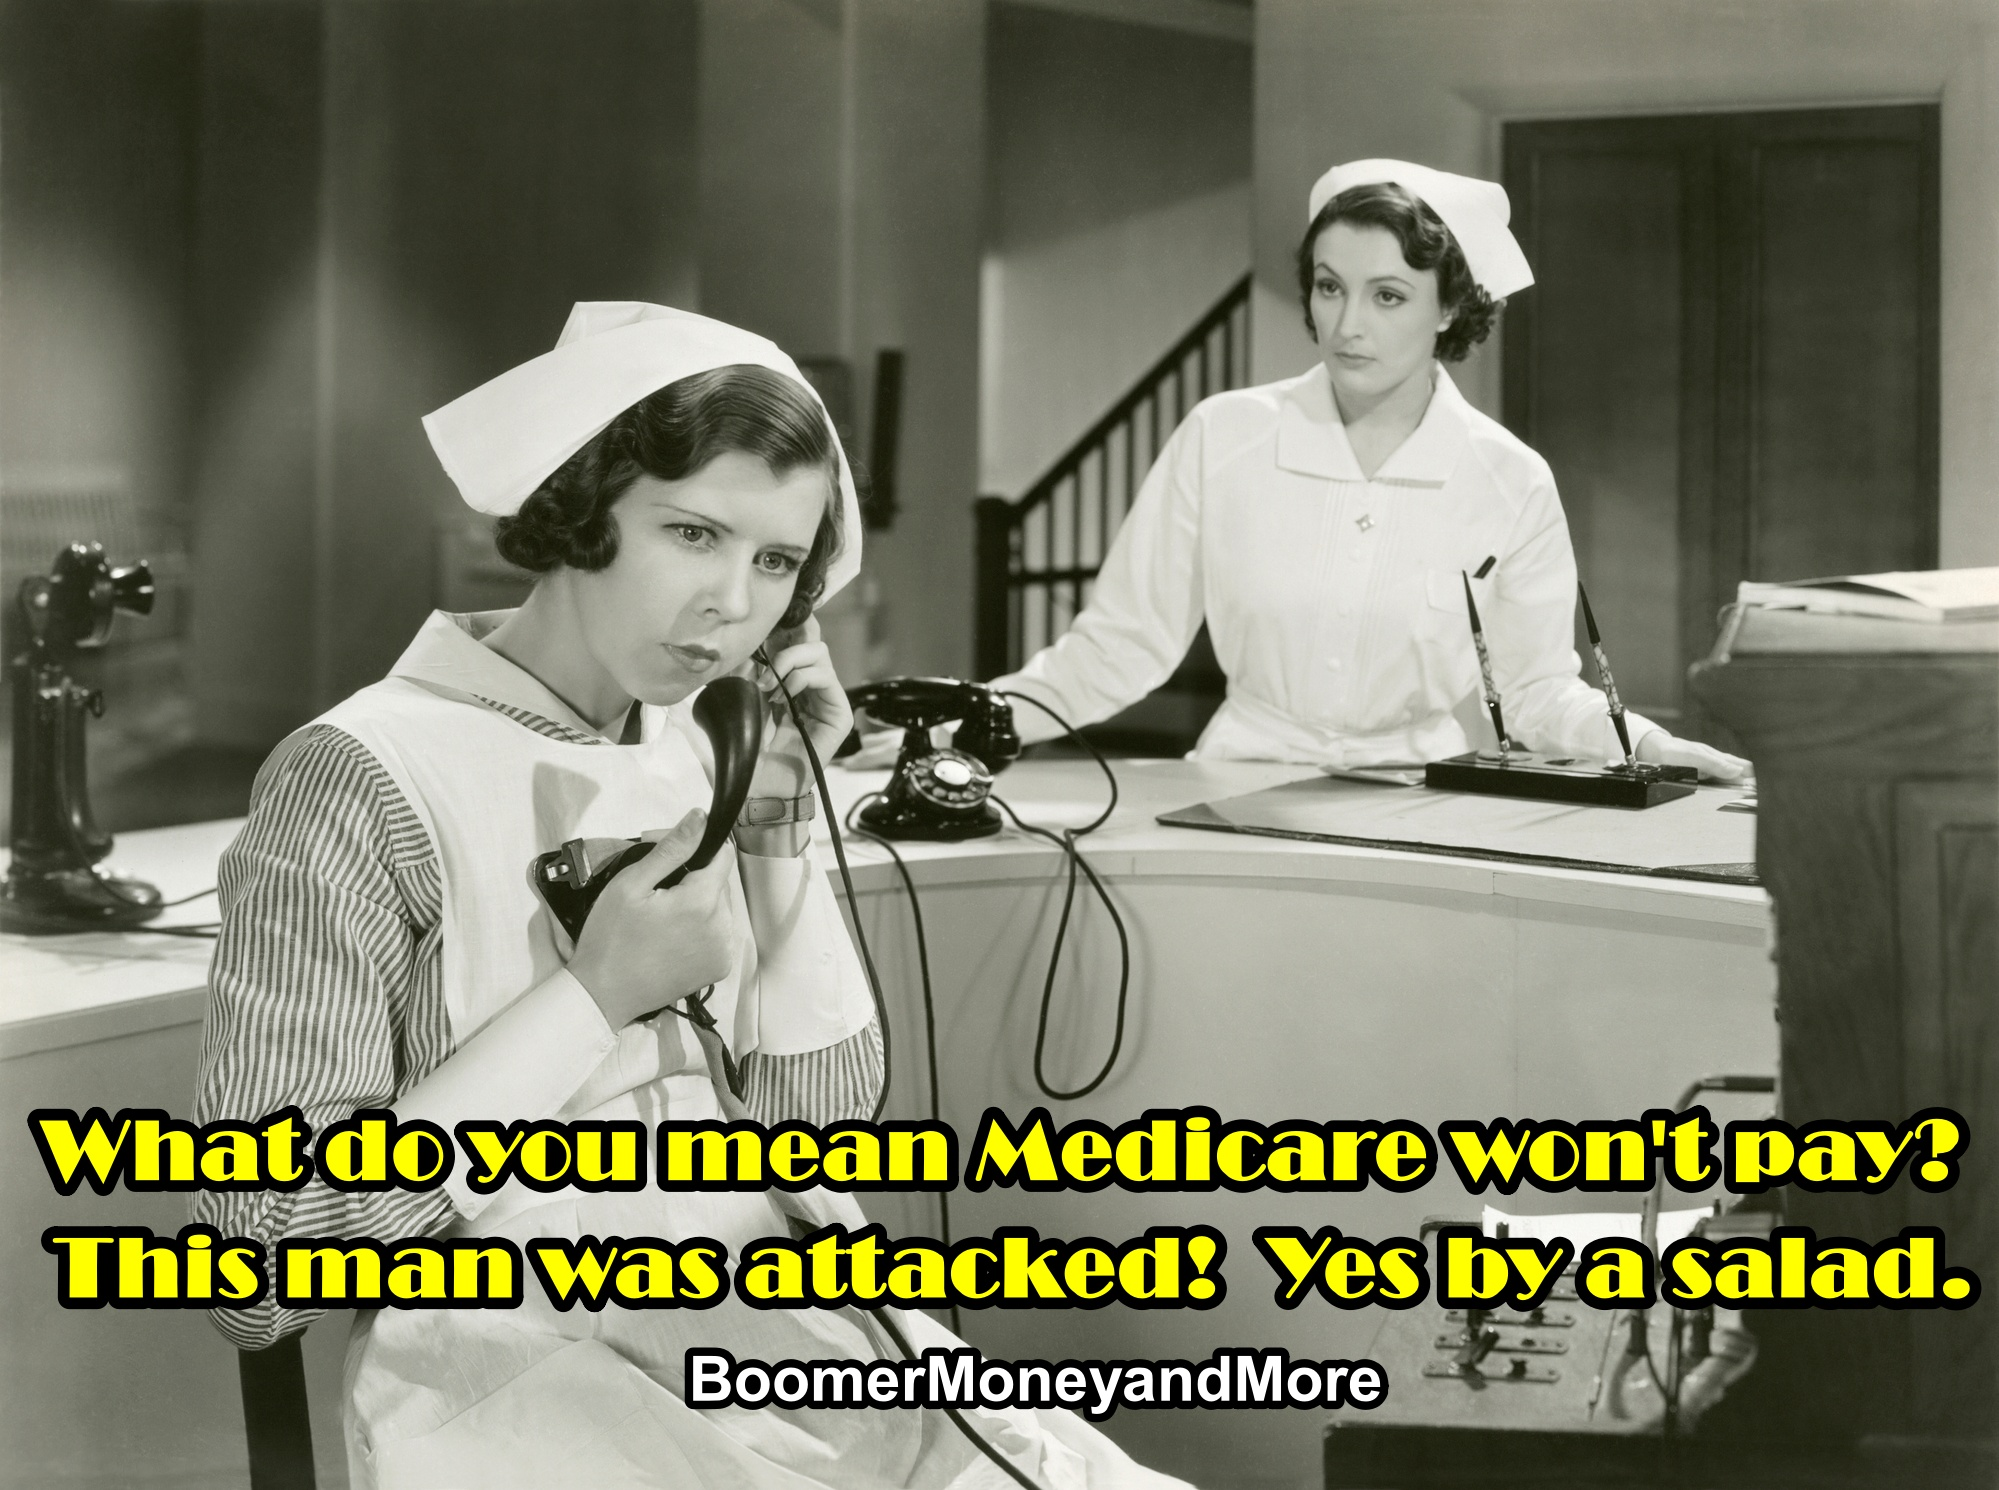 Nurse on phone trying to get medicare authorization.